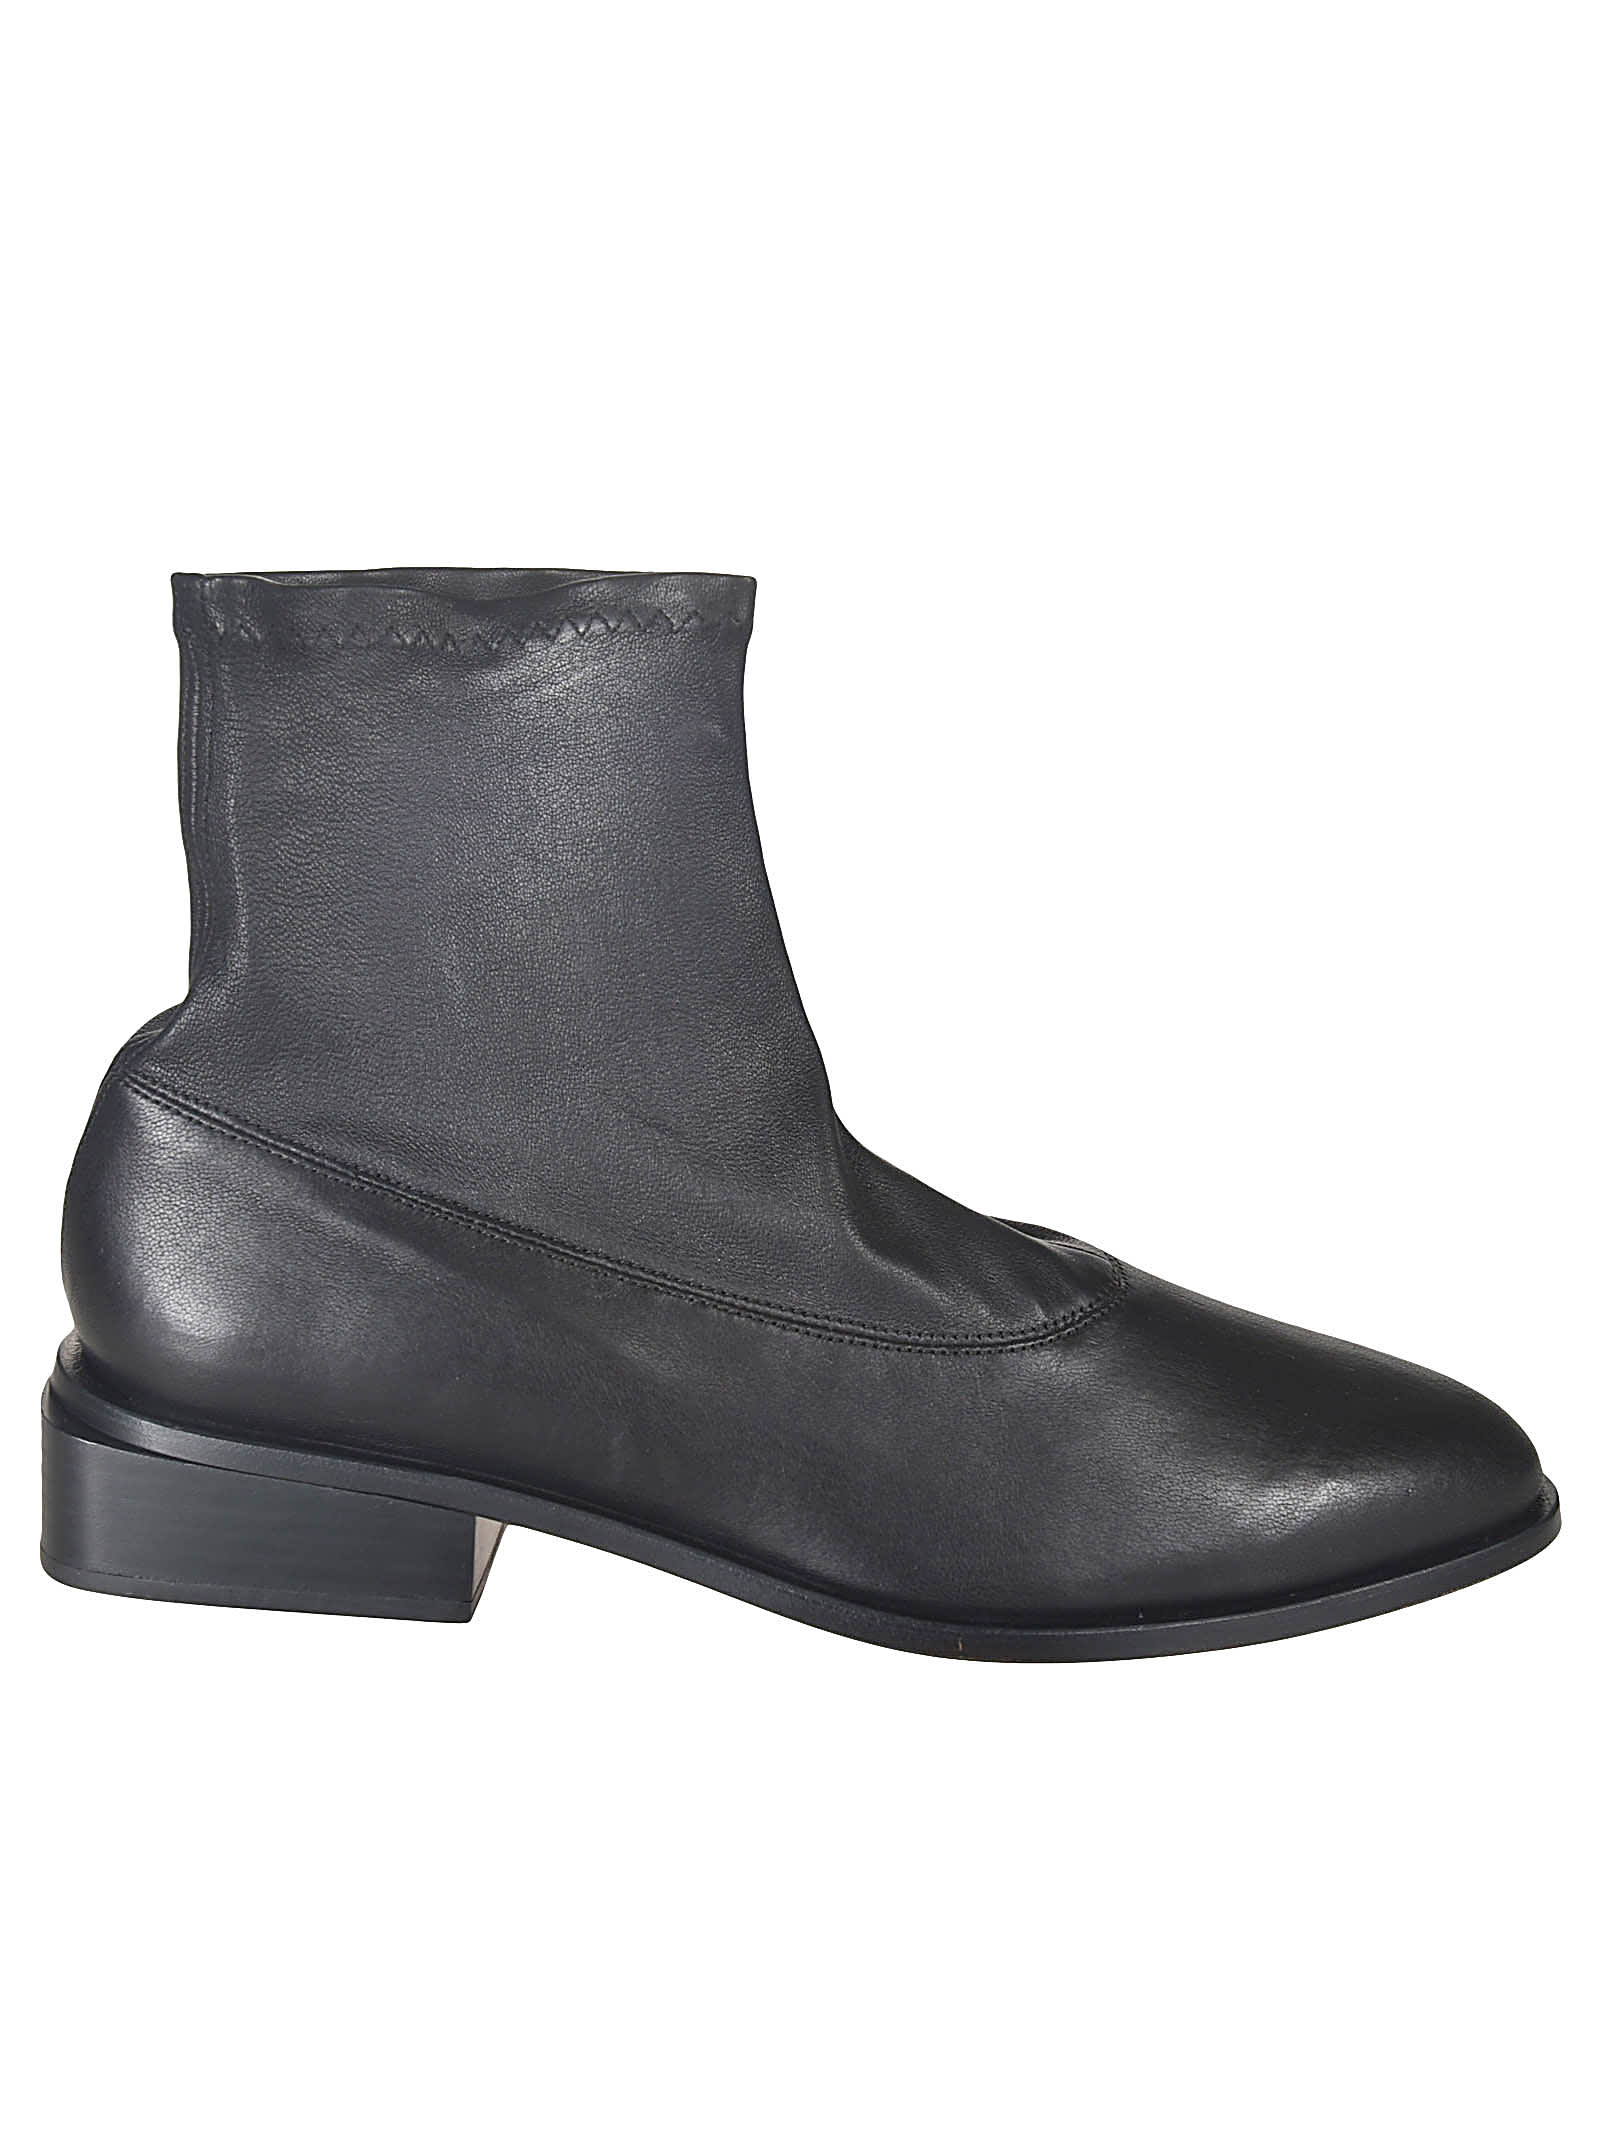 CLERGERIE XILINE BOOTS